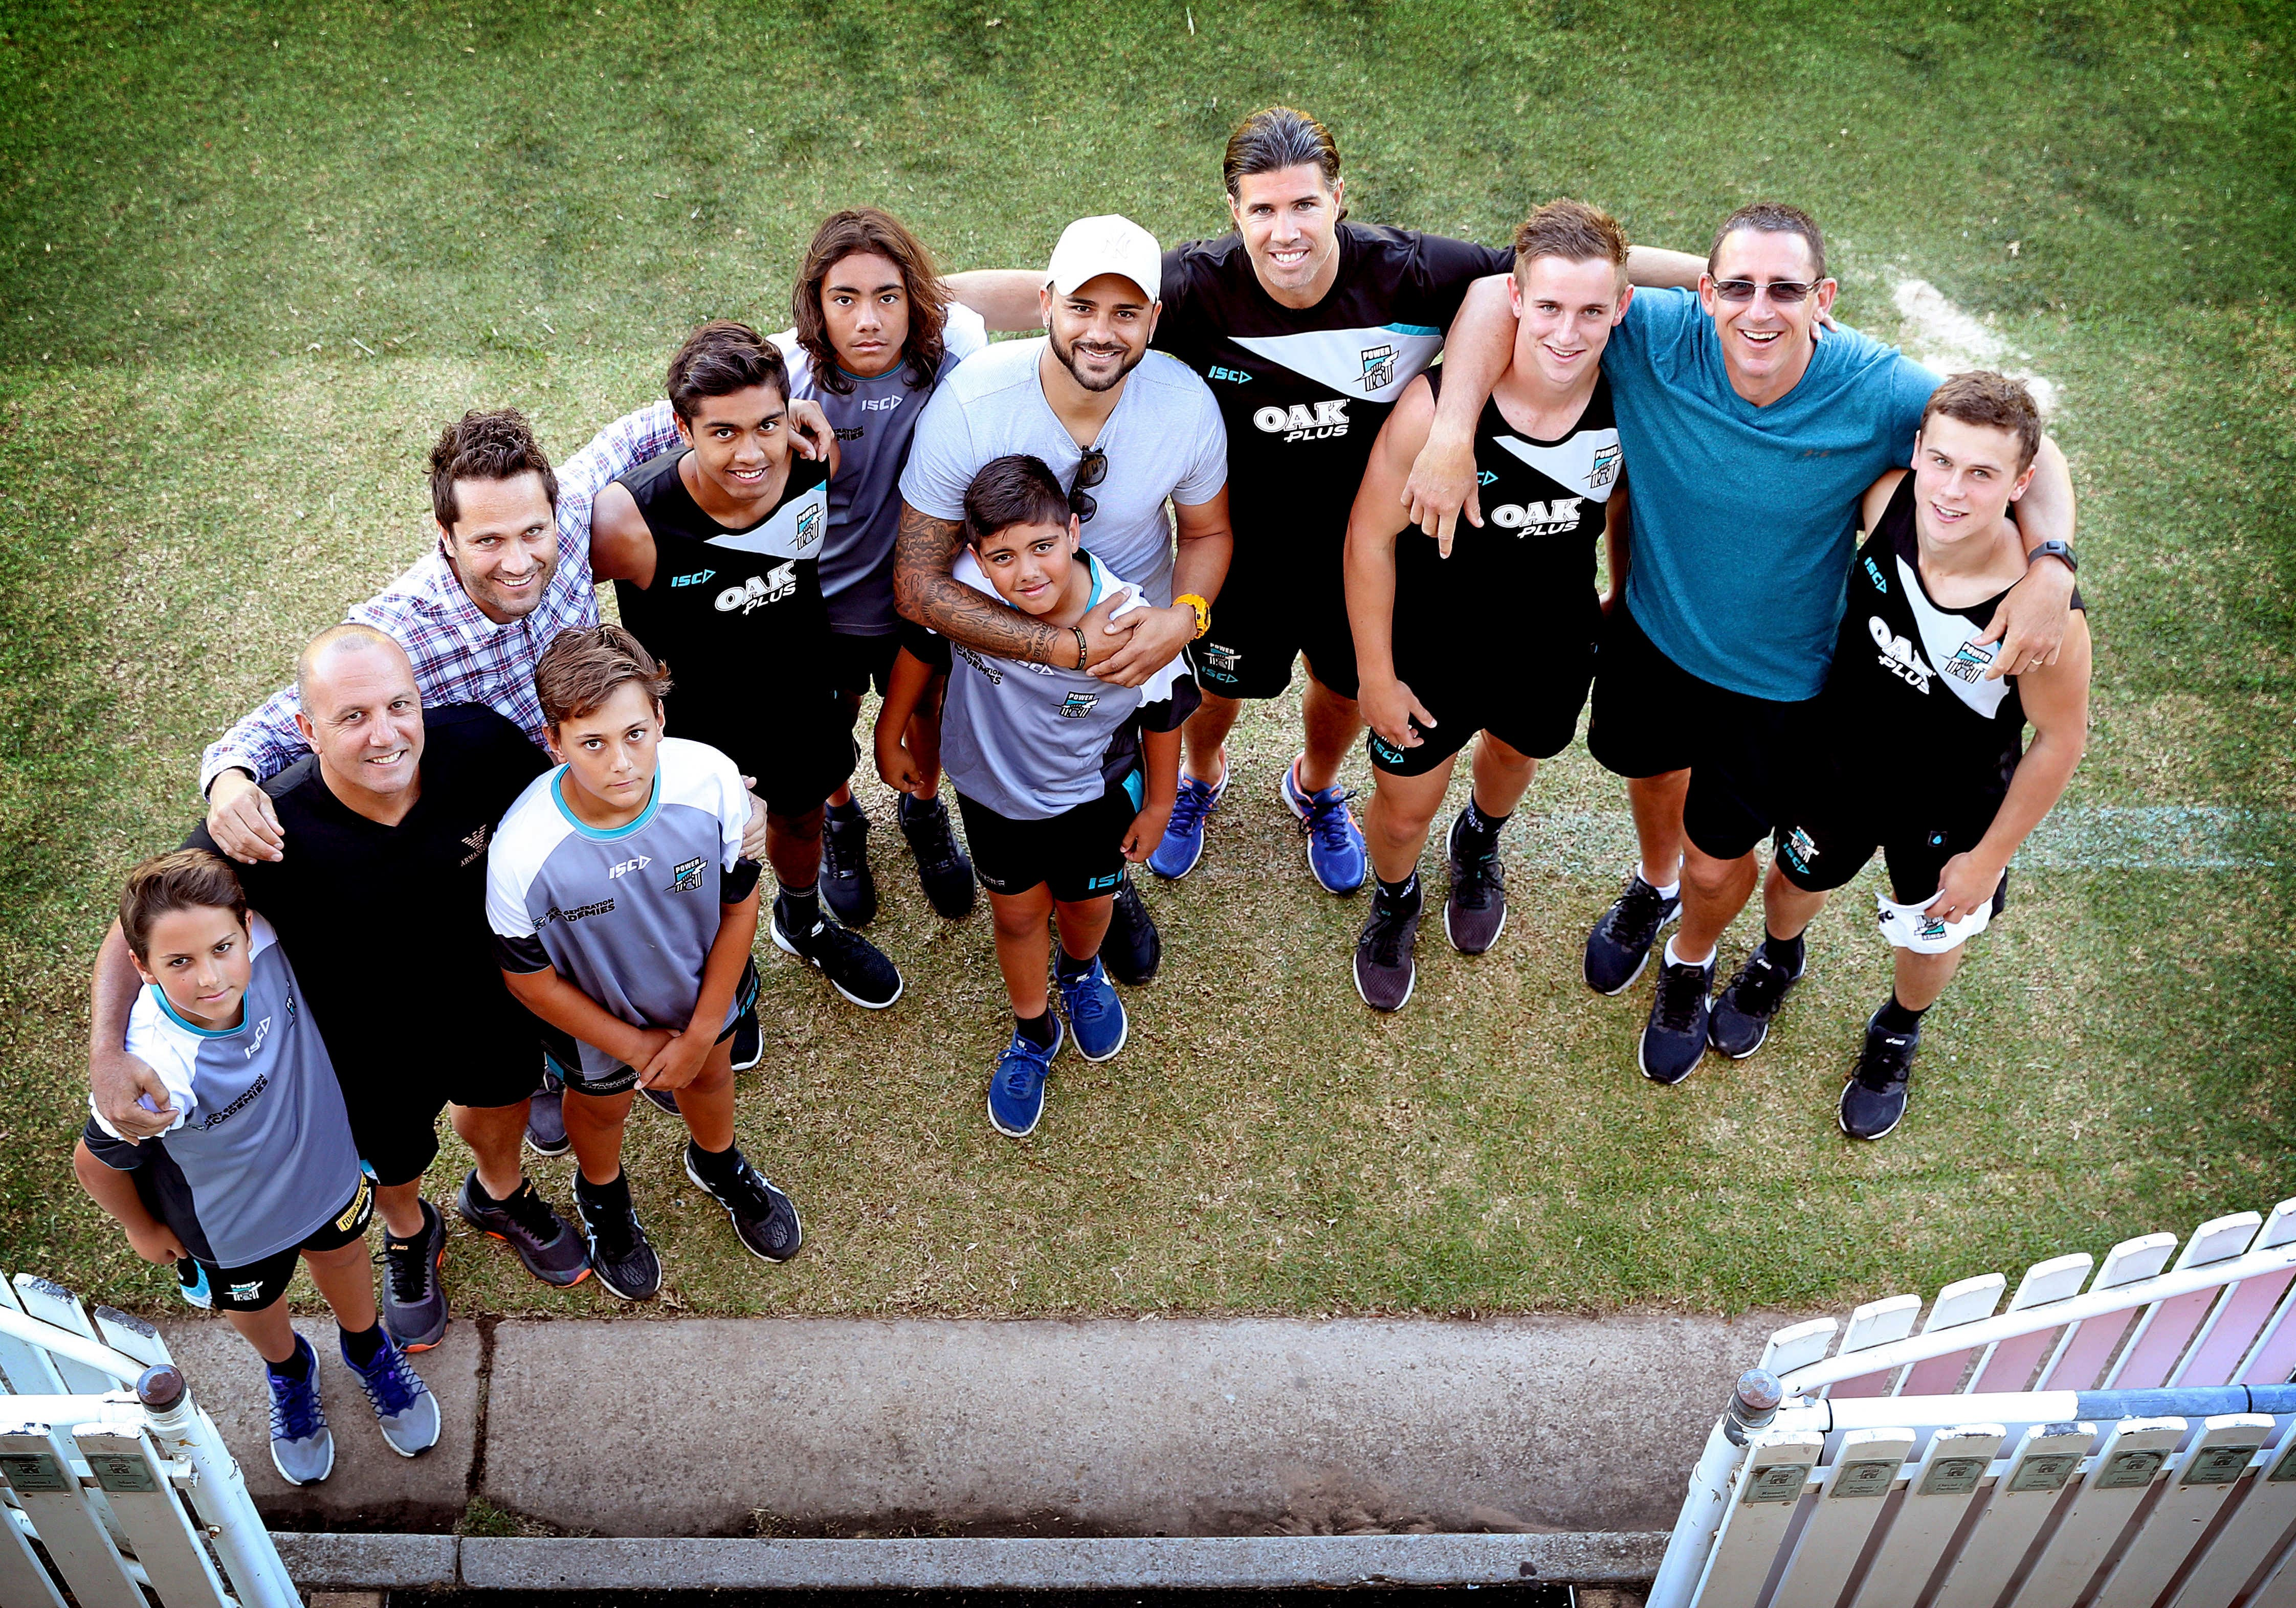 Port Adelaide FC's father/son academy featuring the Wanganeens, Lades, Burgoynes, Meads, Schofields and Fiacchis.